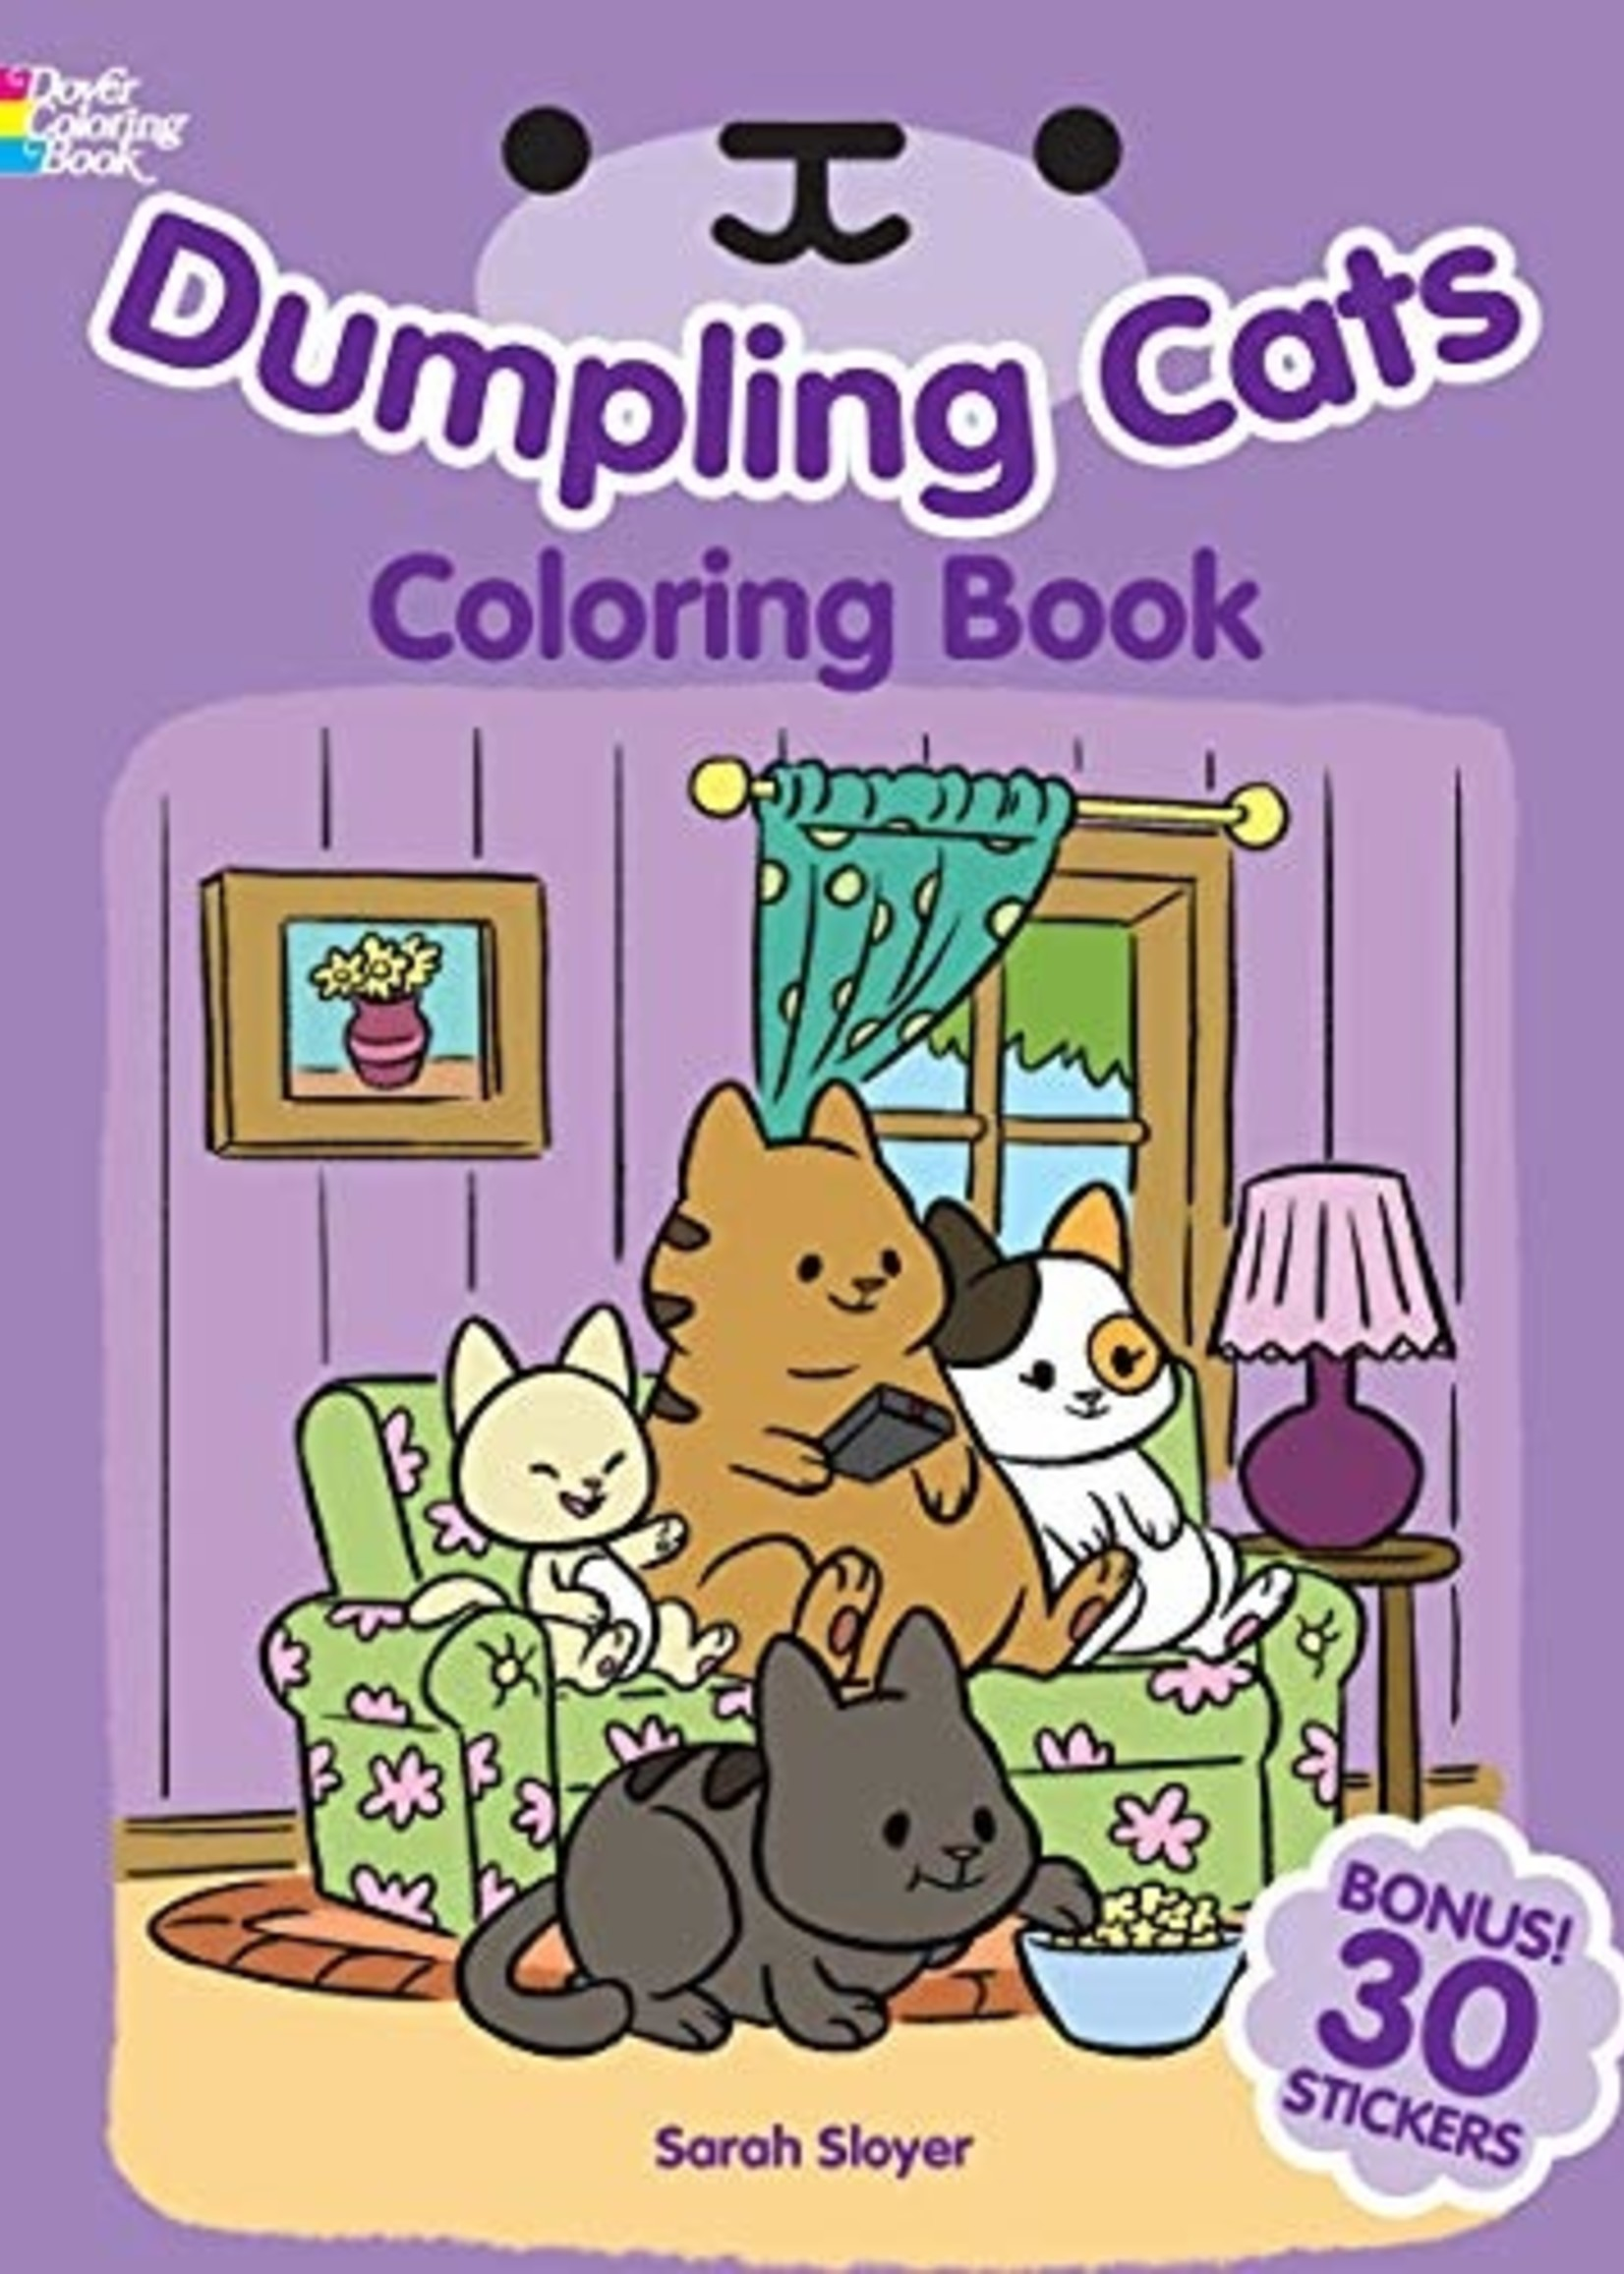 Dumpling Cats Coloring Book with Stickers - PB